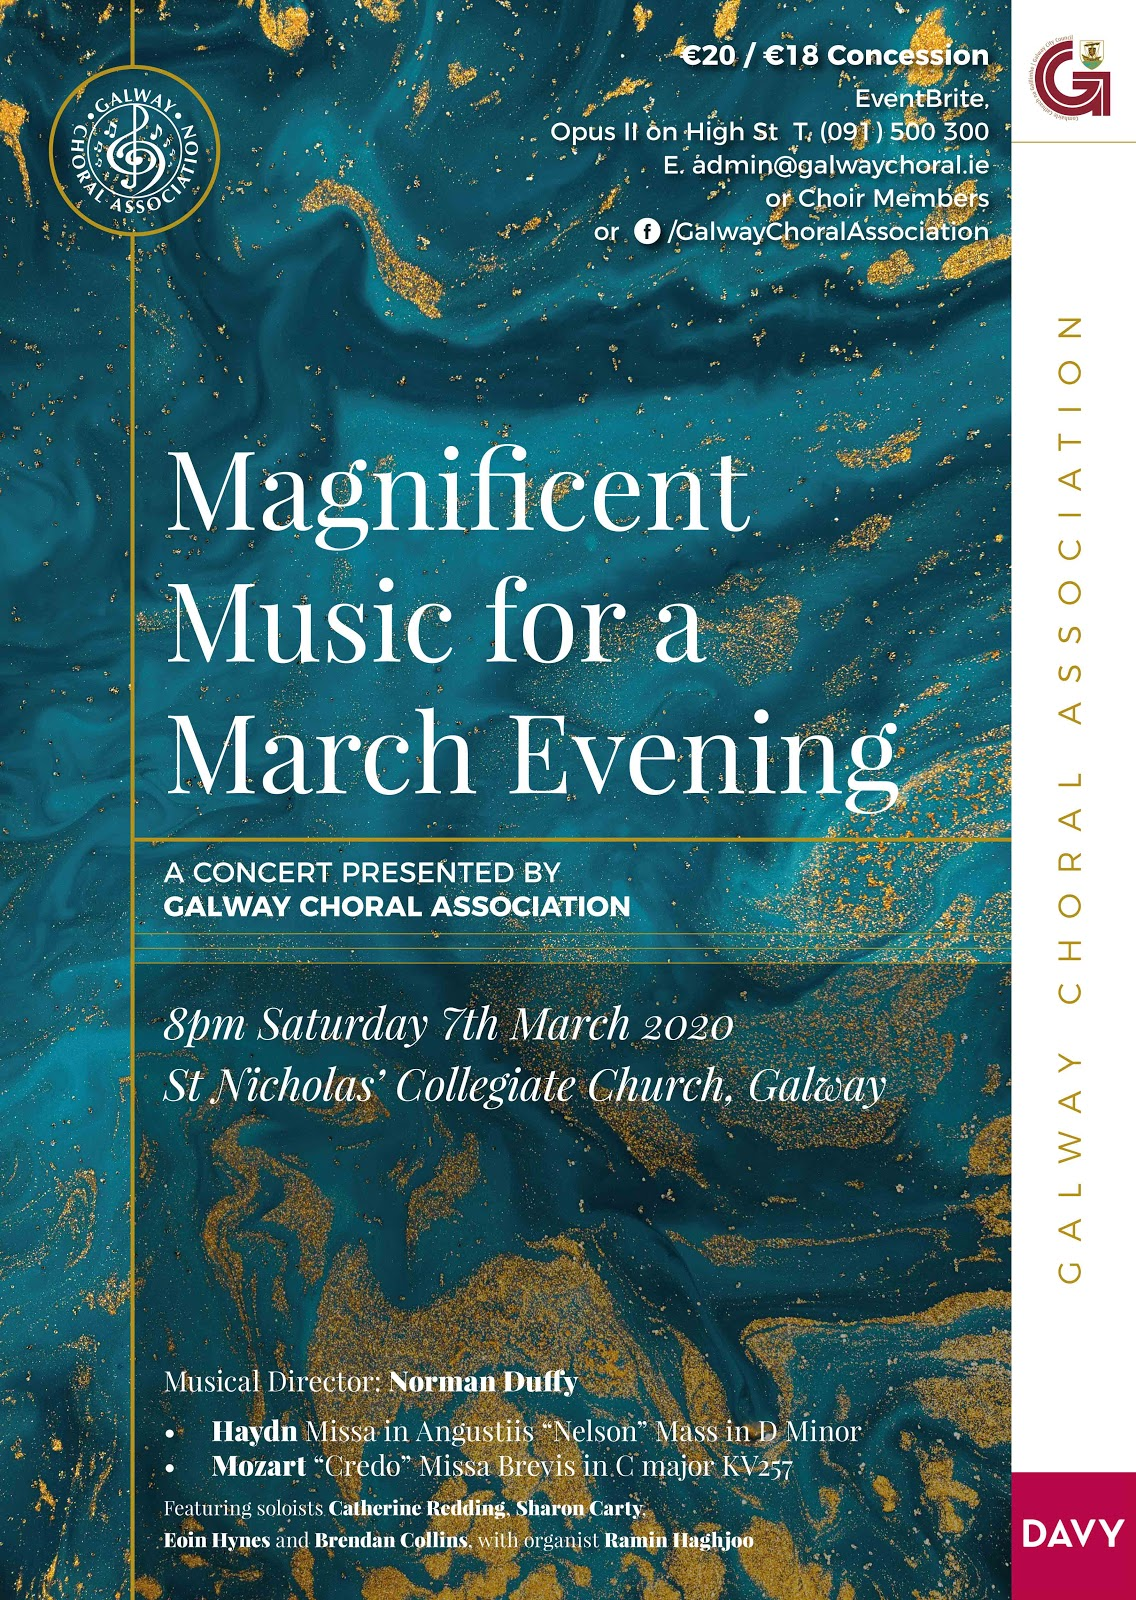 Haydn Missa in Angustiis (Nelson Mass) and Mozart Credo Mass in C major K. 257 - concert performance in Galway city in March 2020